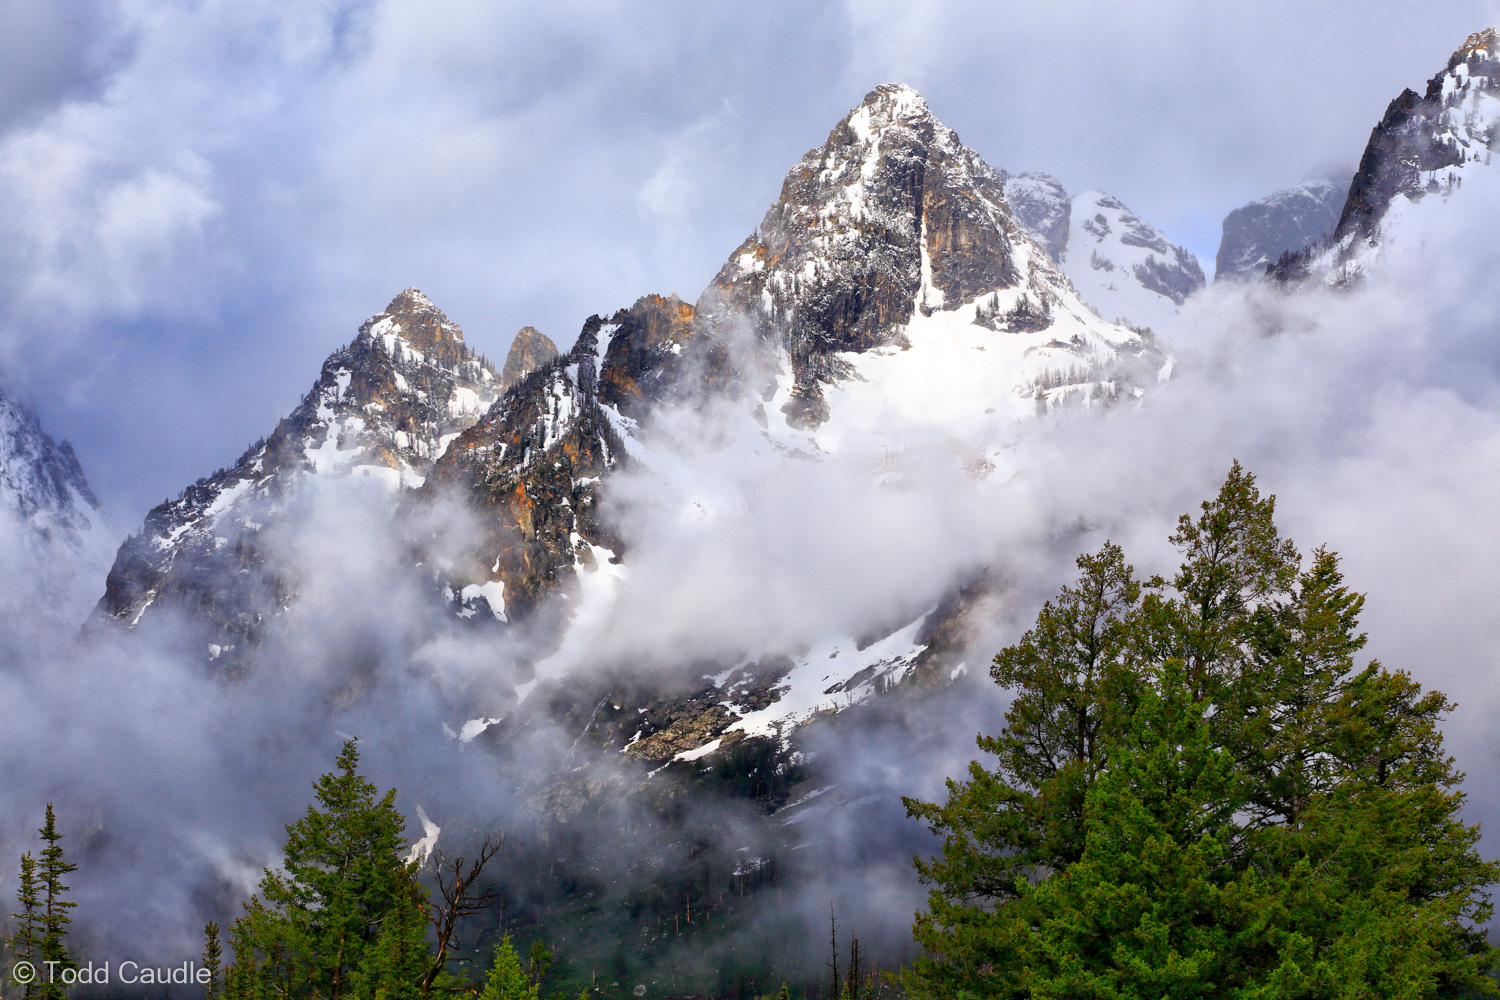 Morning clouds swirl around peaks of the Teton Range on an early-summer day.